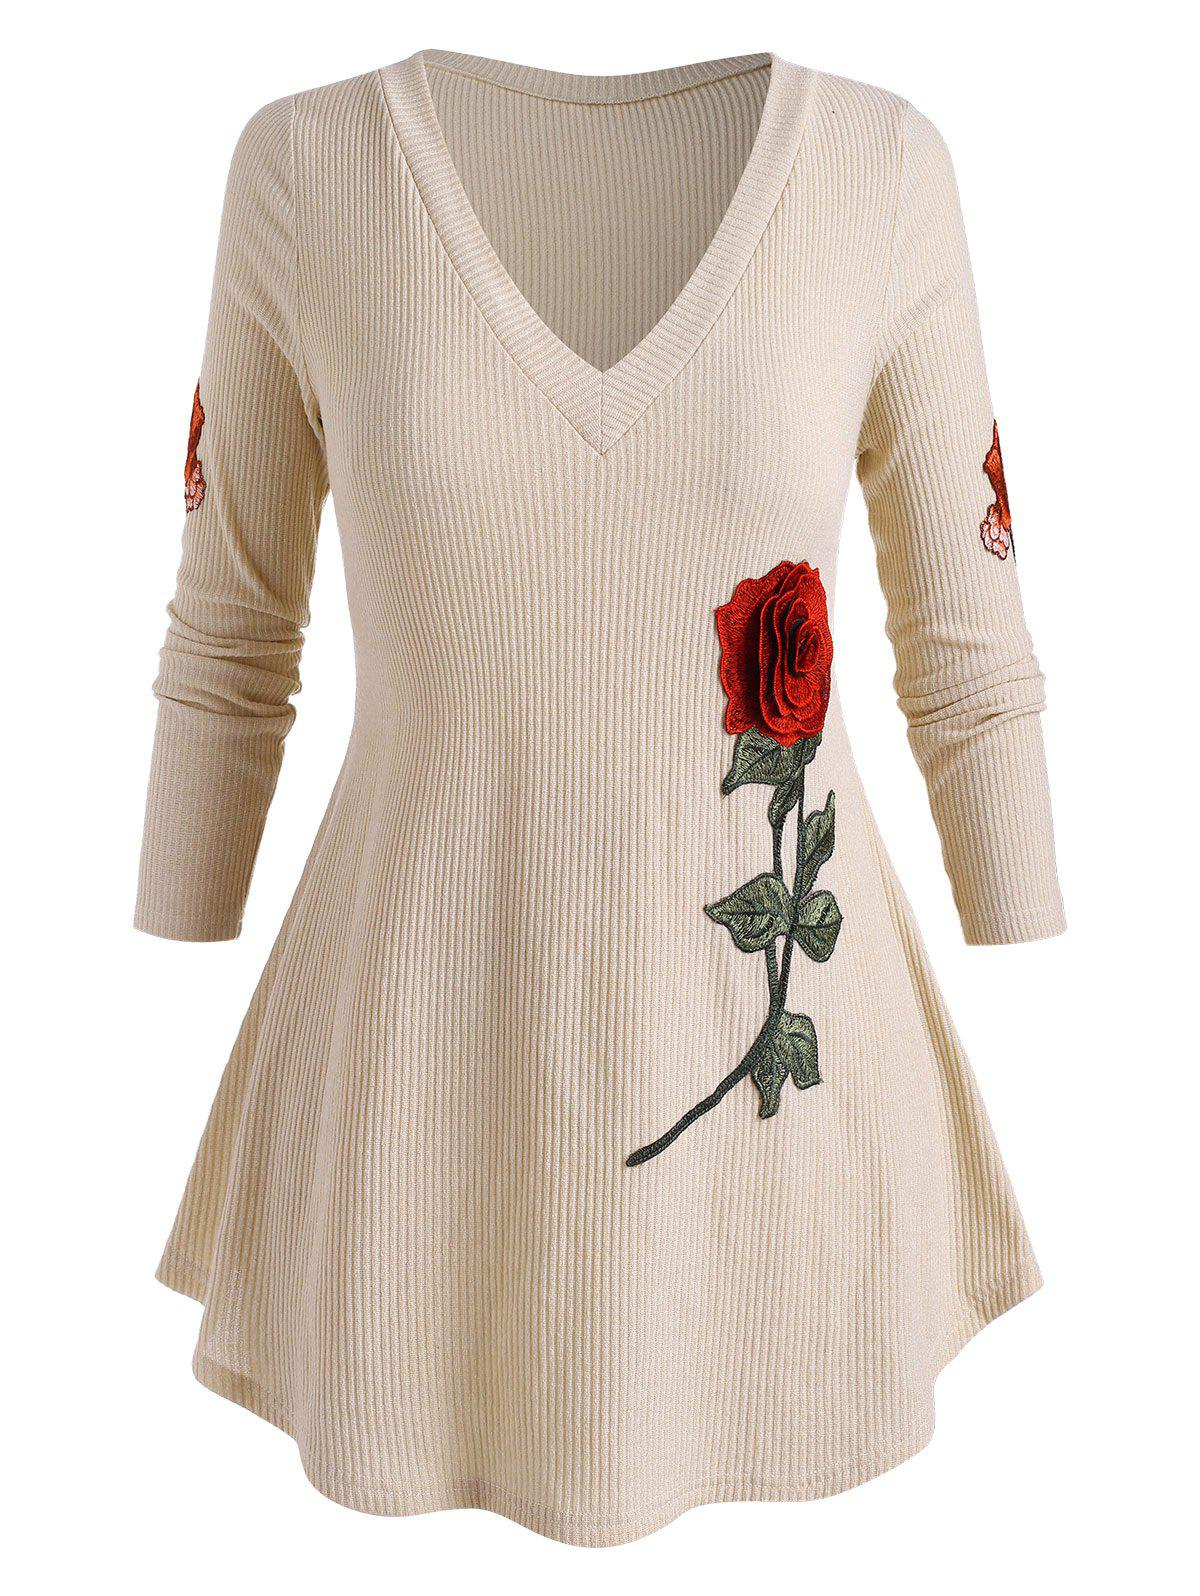 Plus Size Flower Embroidered Ribbed Round Hem Sweater - LIGHT COFFEE 5X